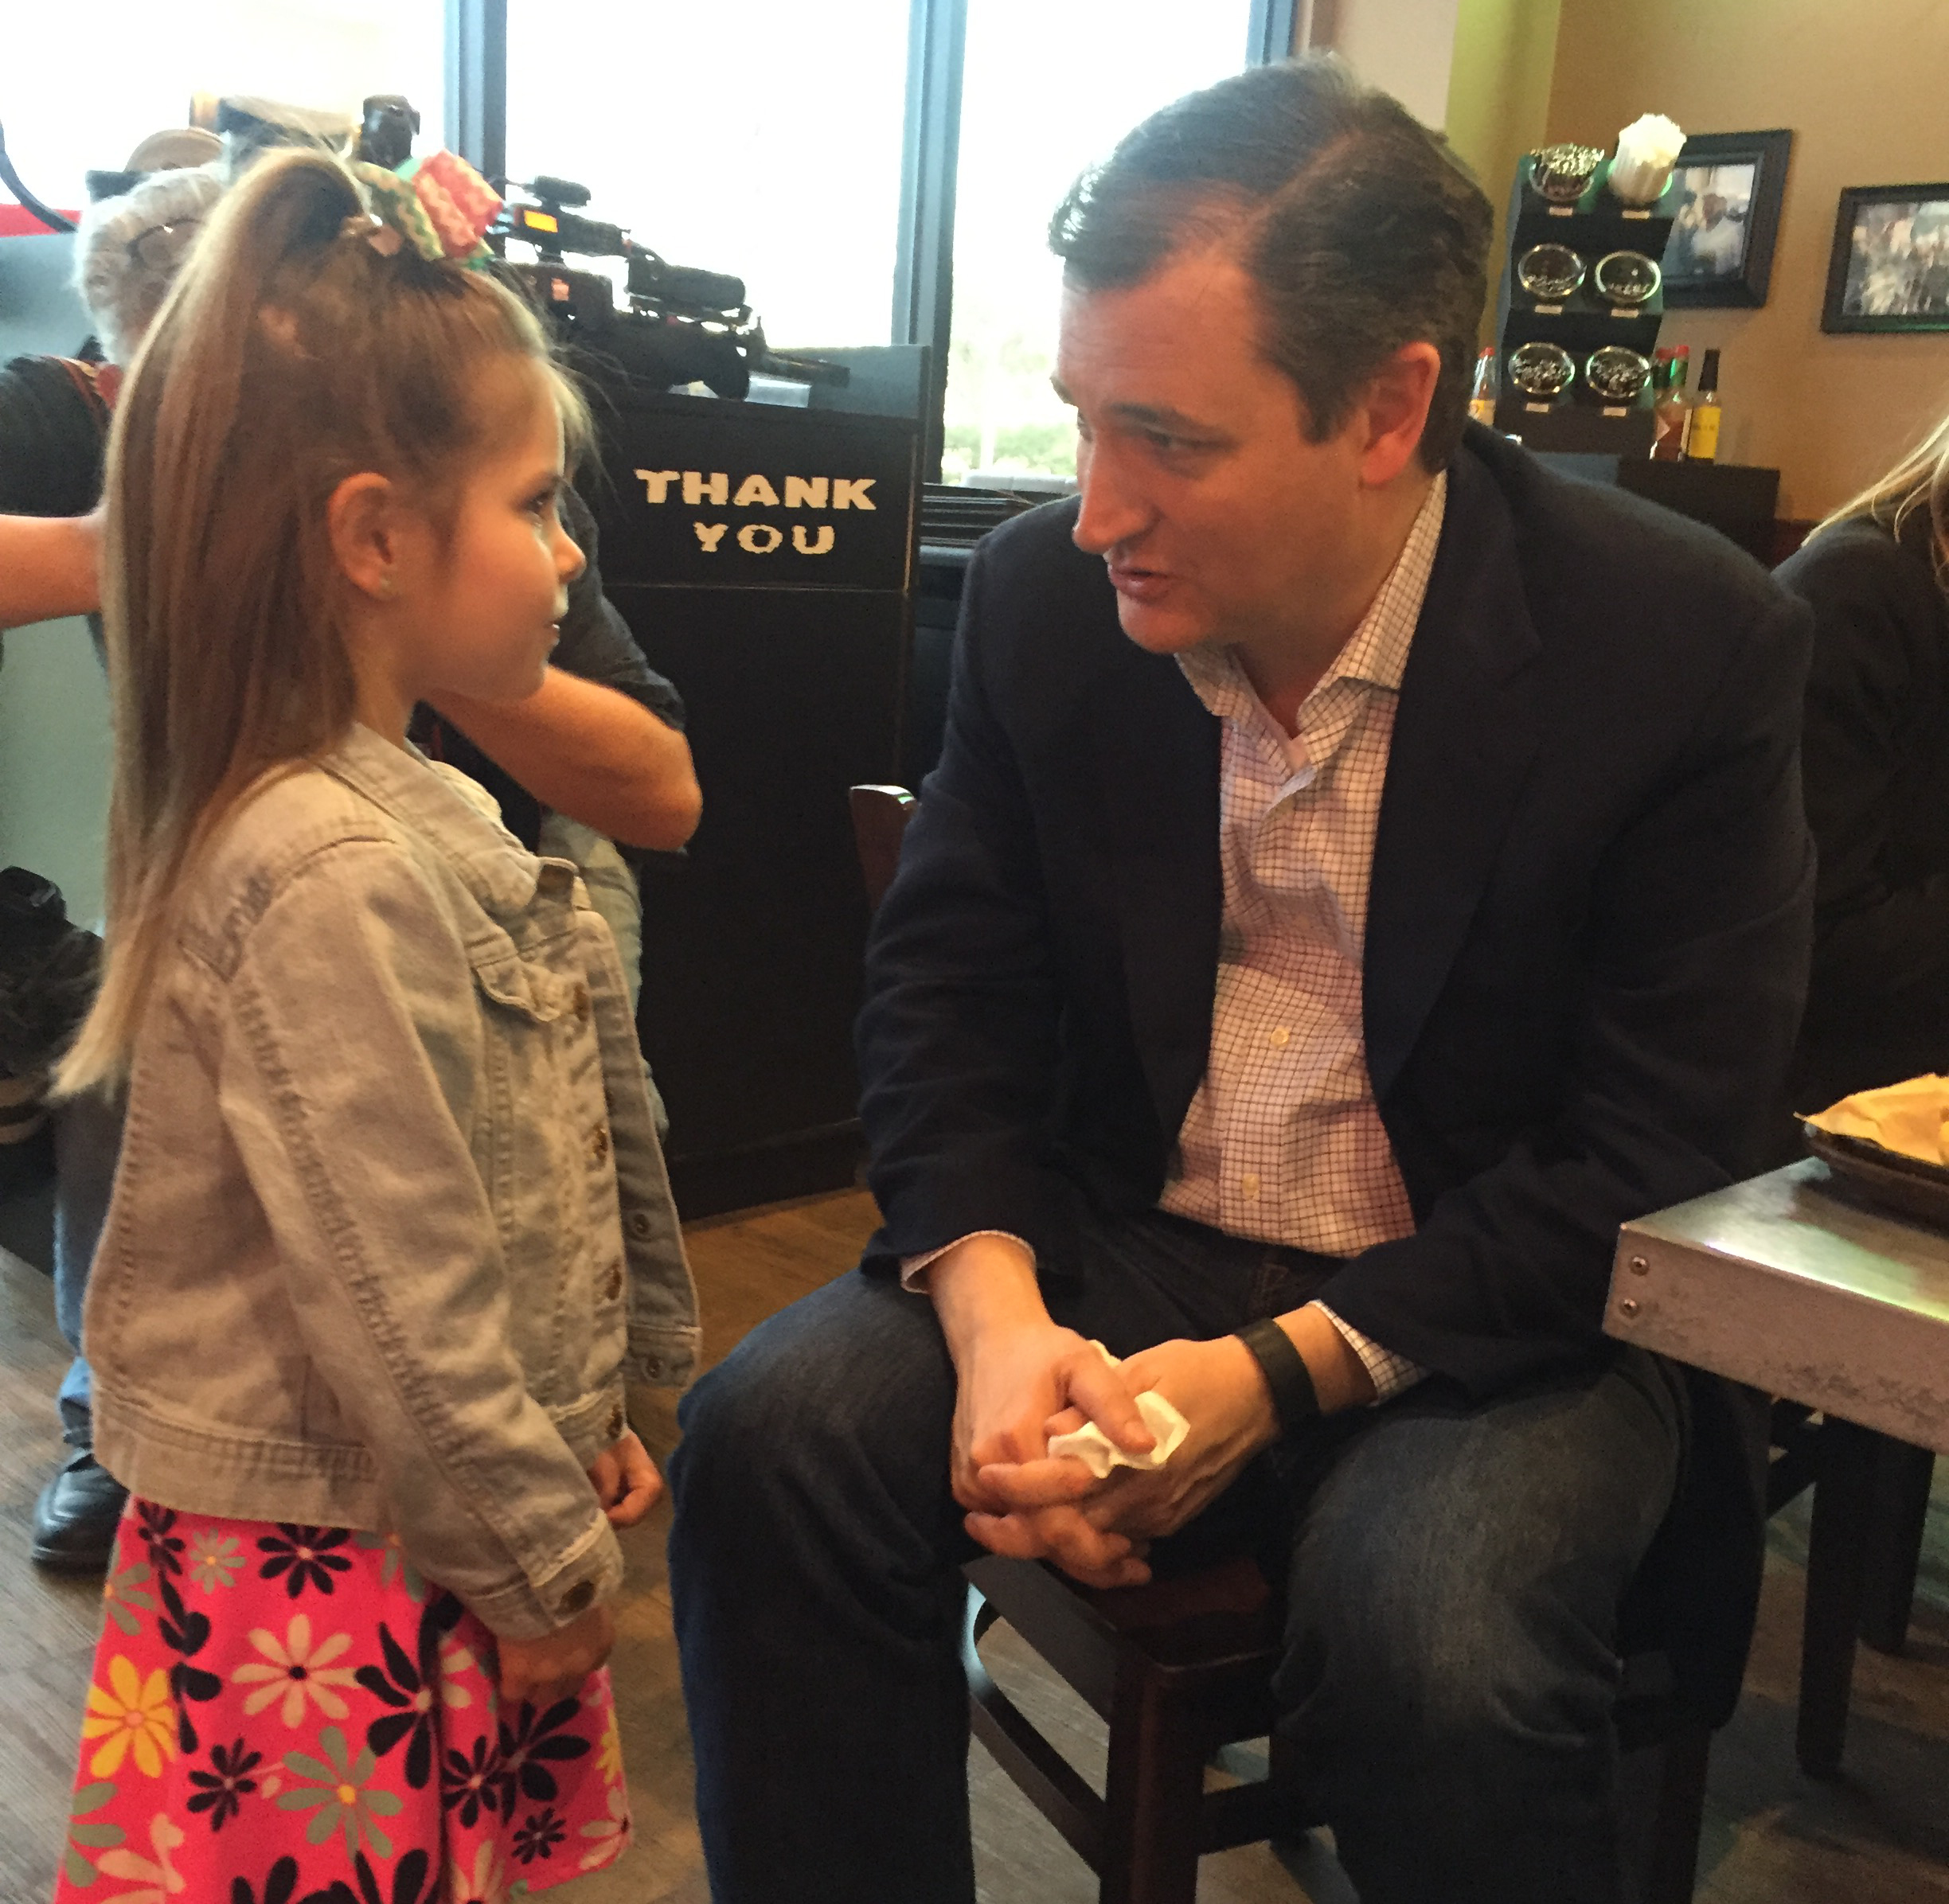 She might not be able to vote, but Cruz still took time to speak to this future voter.